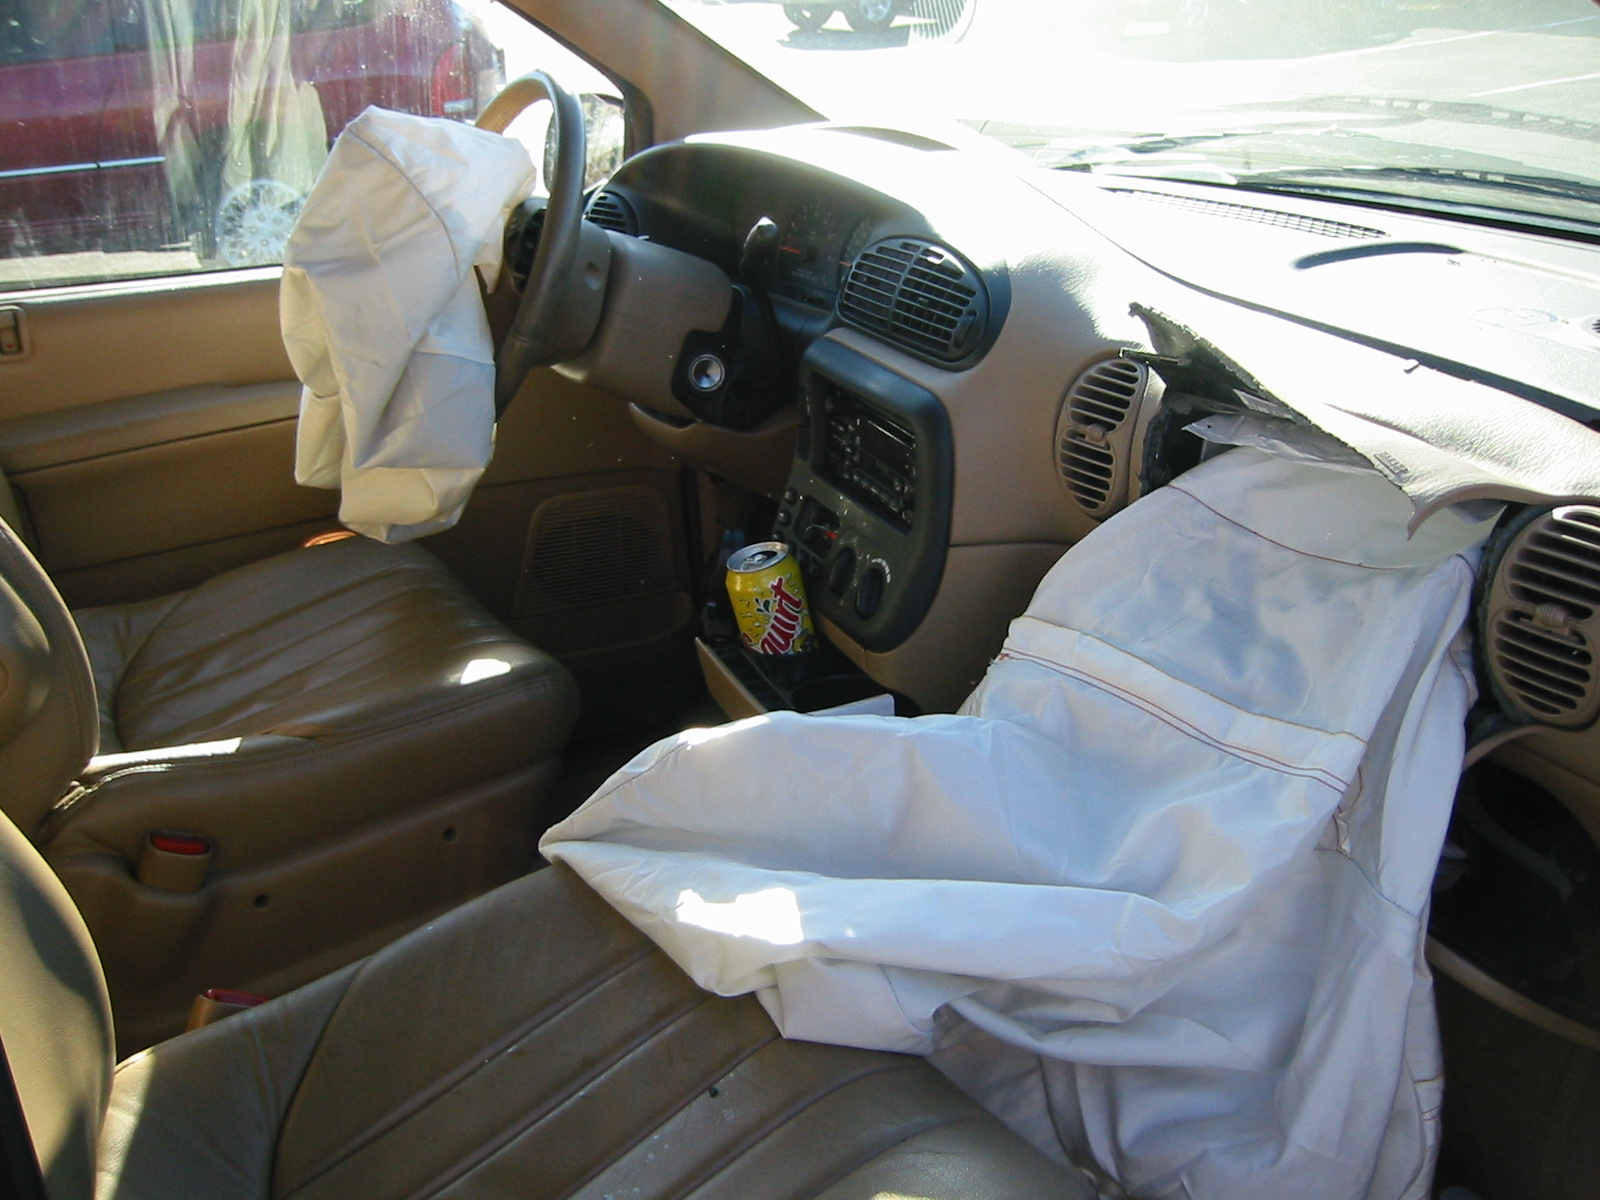 GM Says its Airbags are Safe; Issues Recall Anyways - GM ...